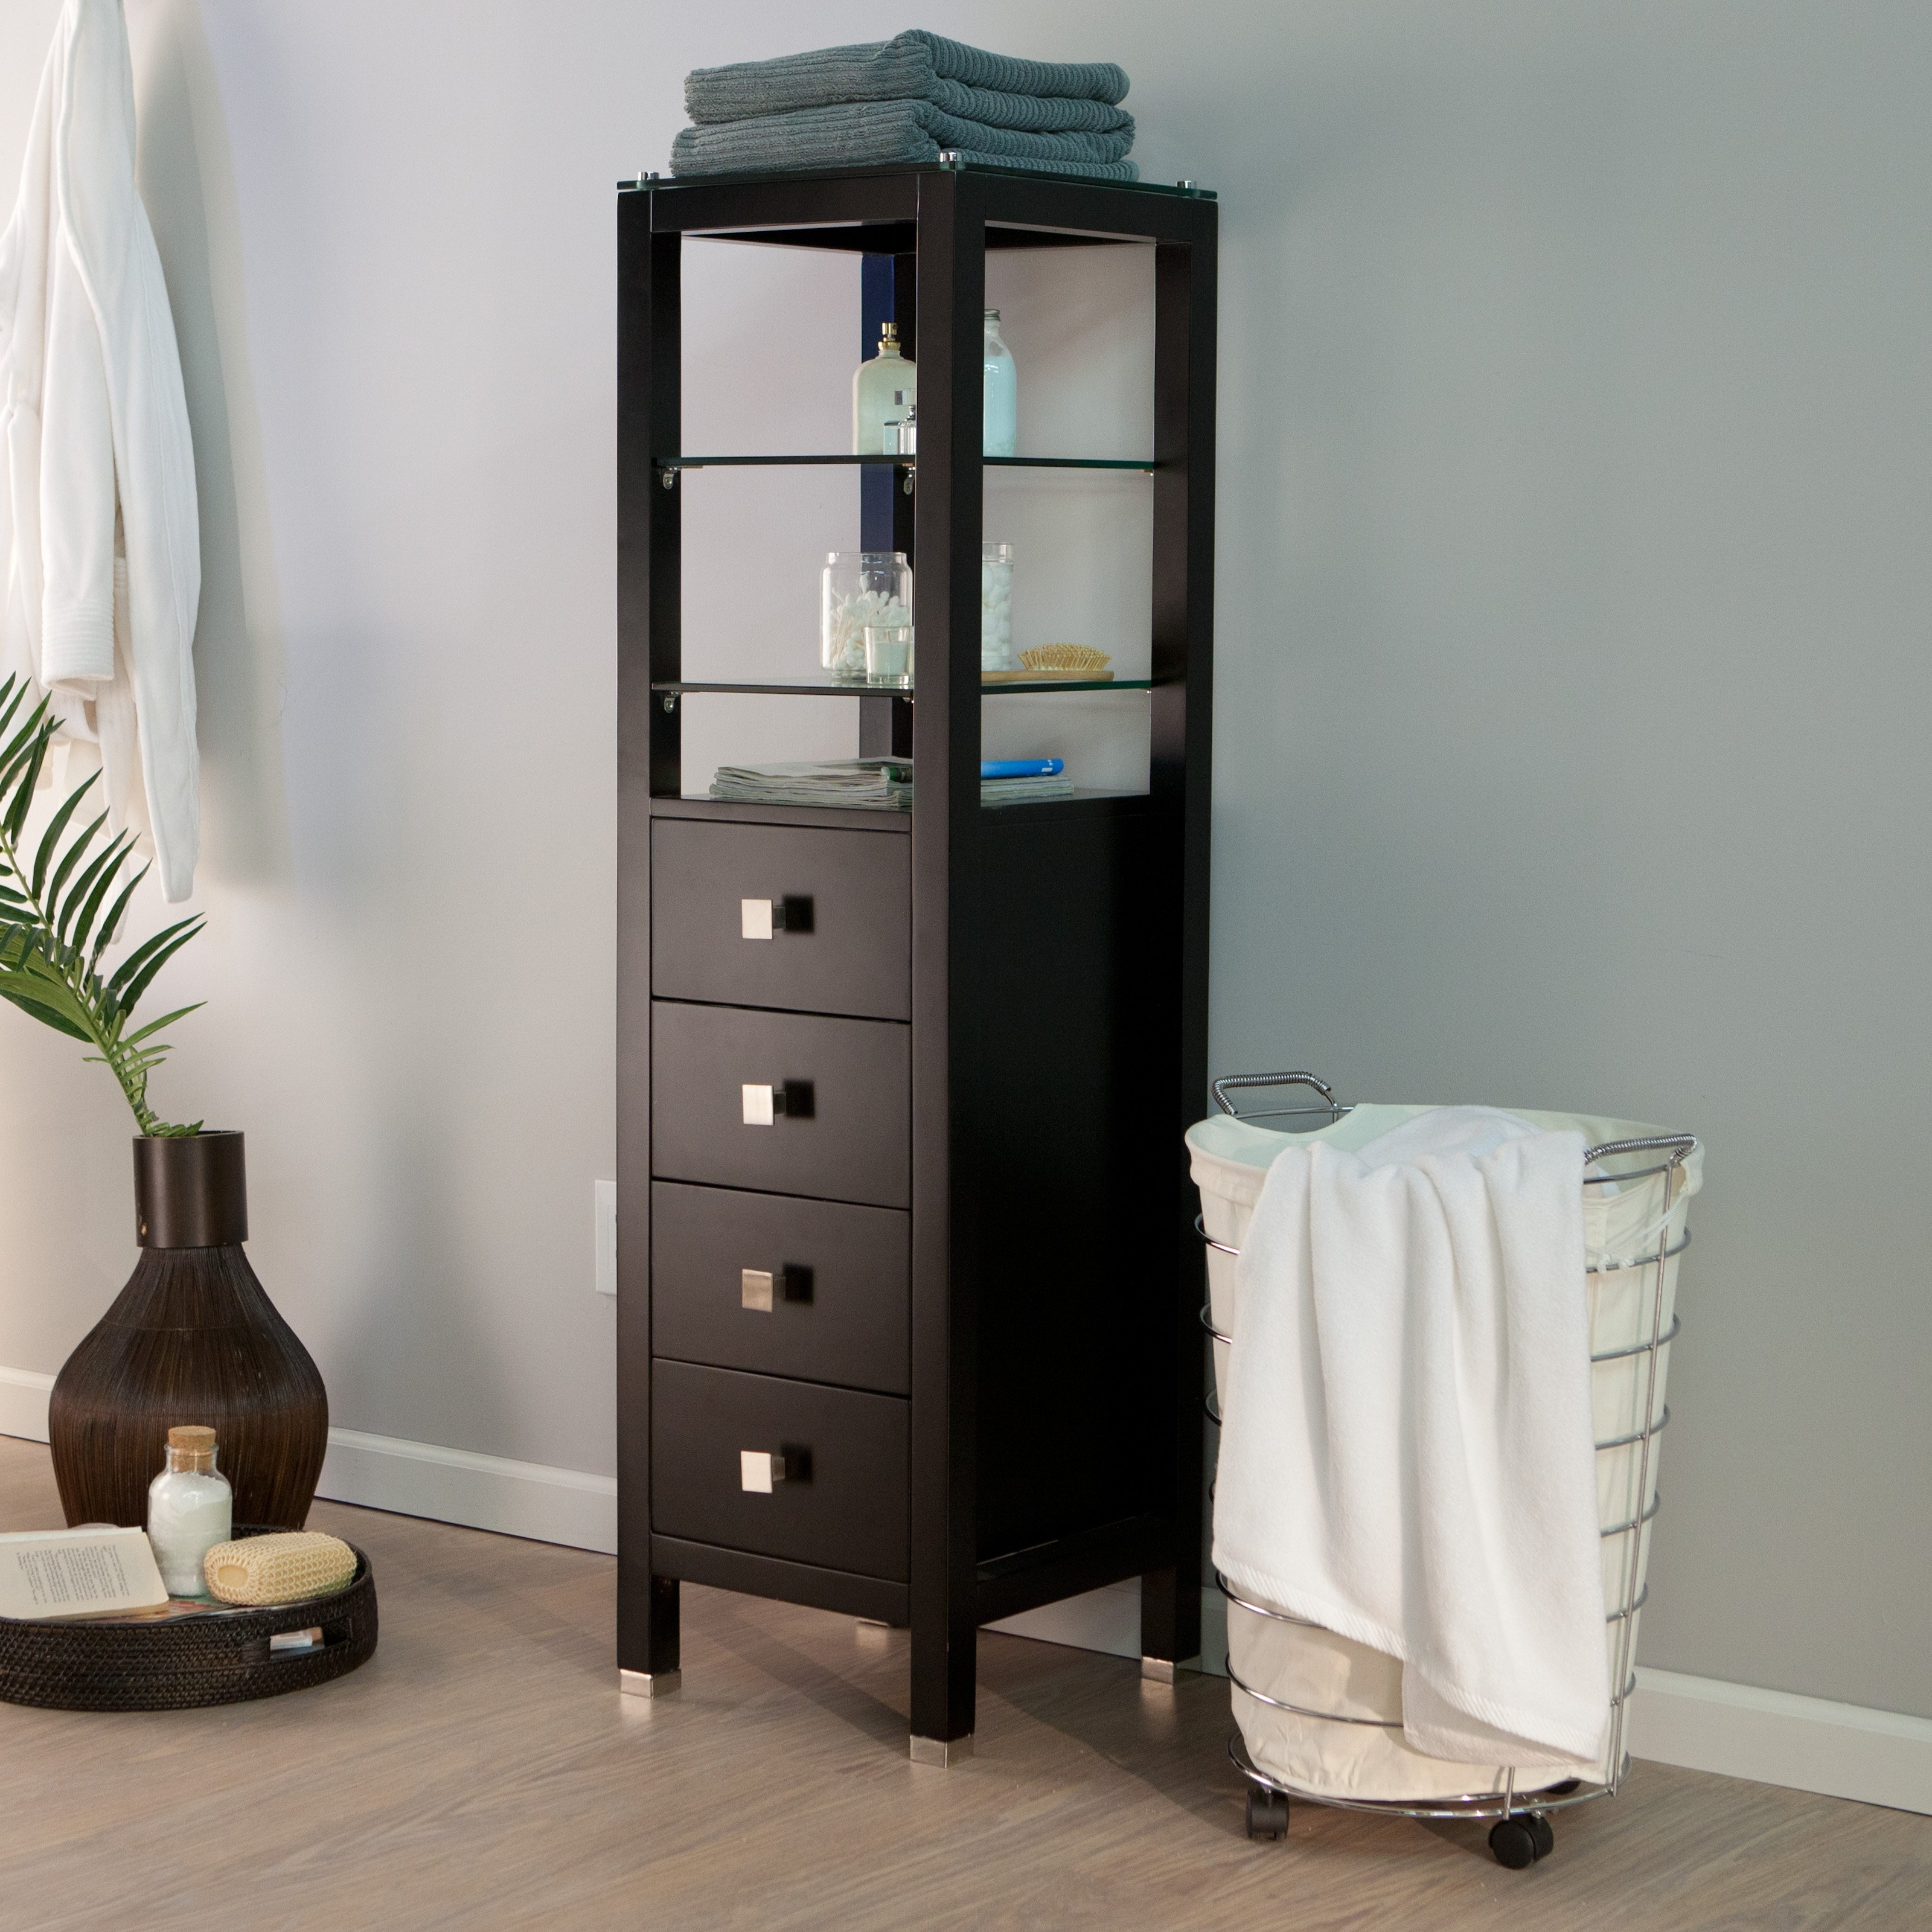 Storage Cabinet With Drawers And Shelves